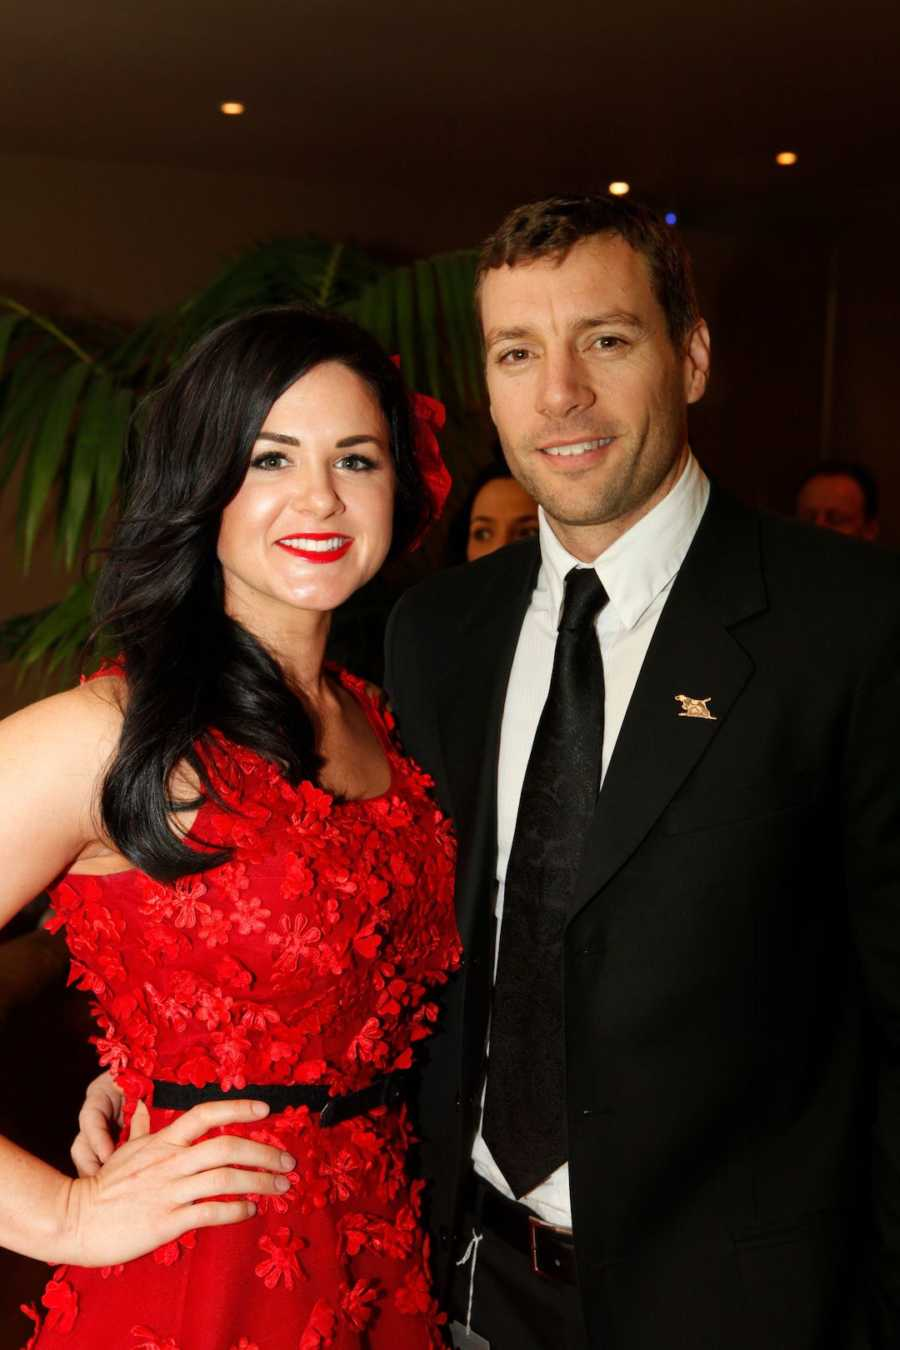 Husband and wife wearing red dress smiling together